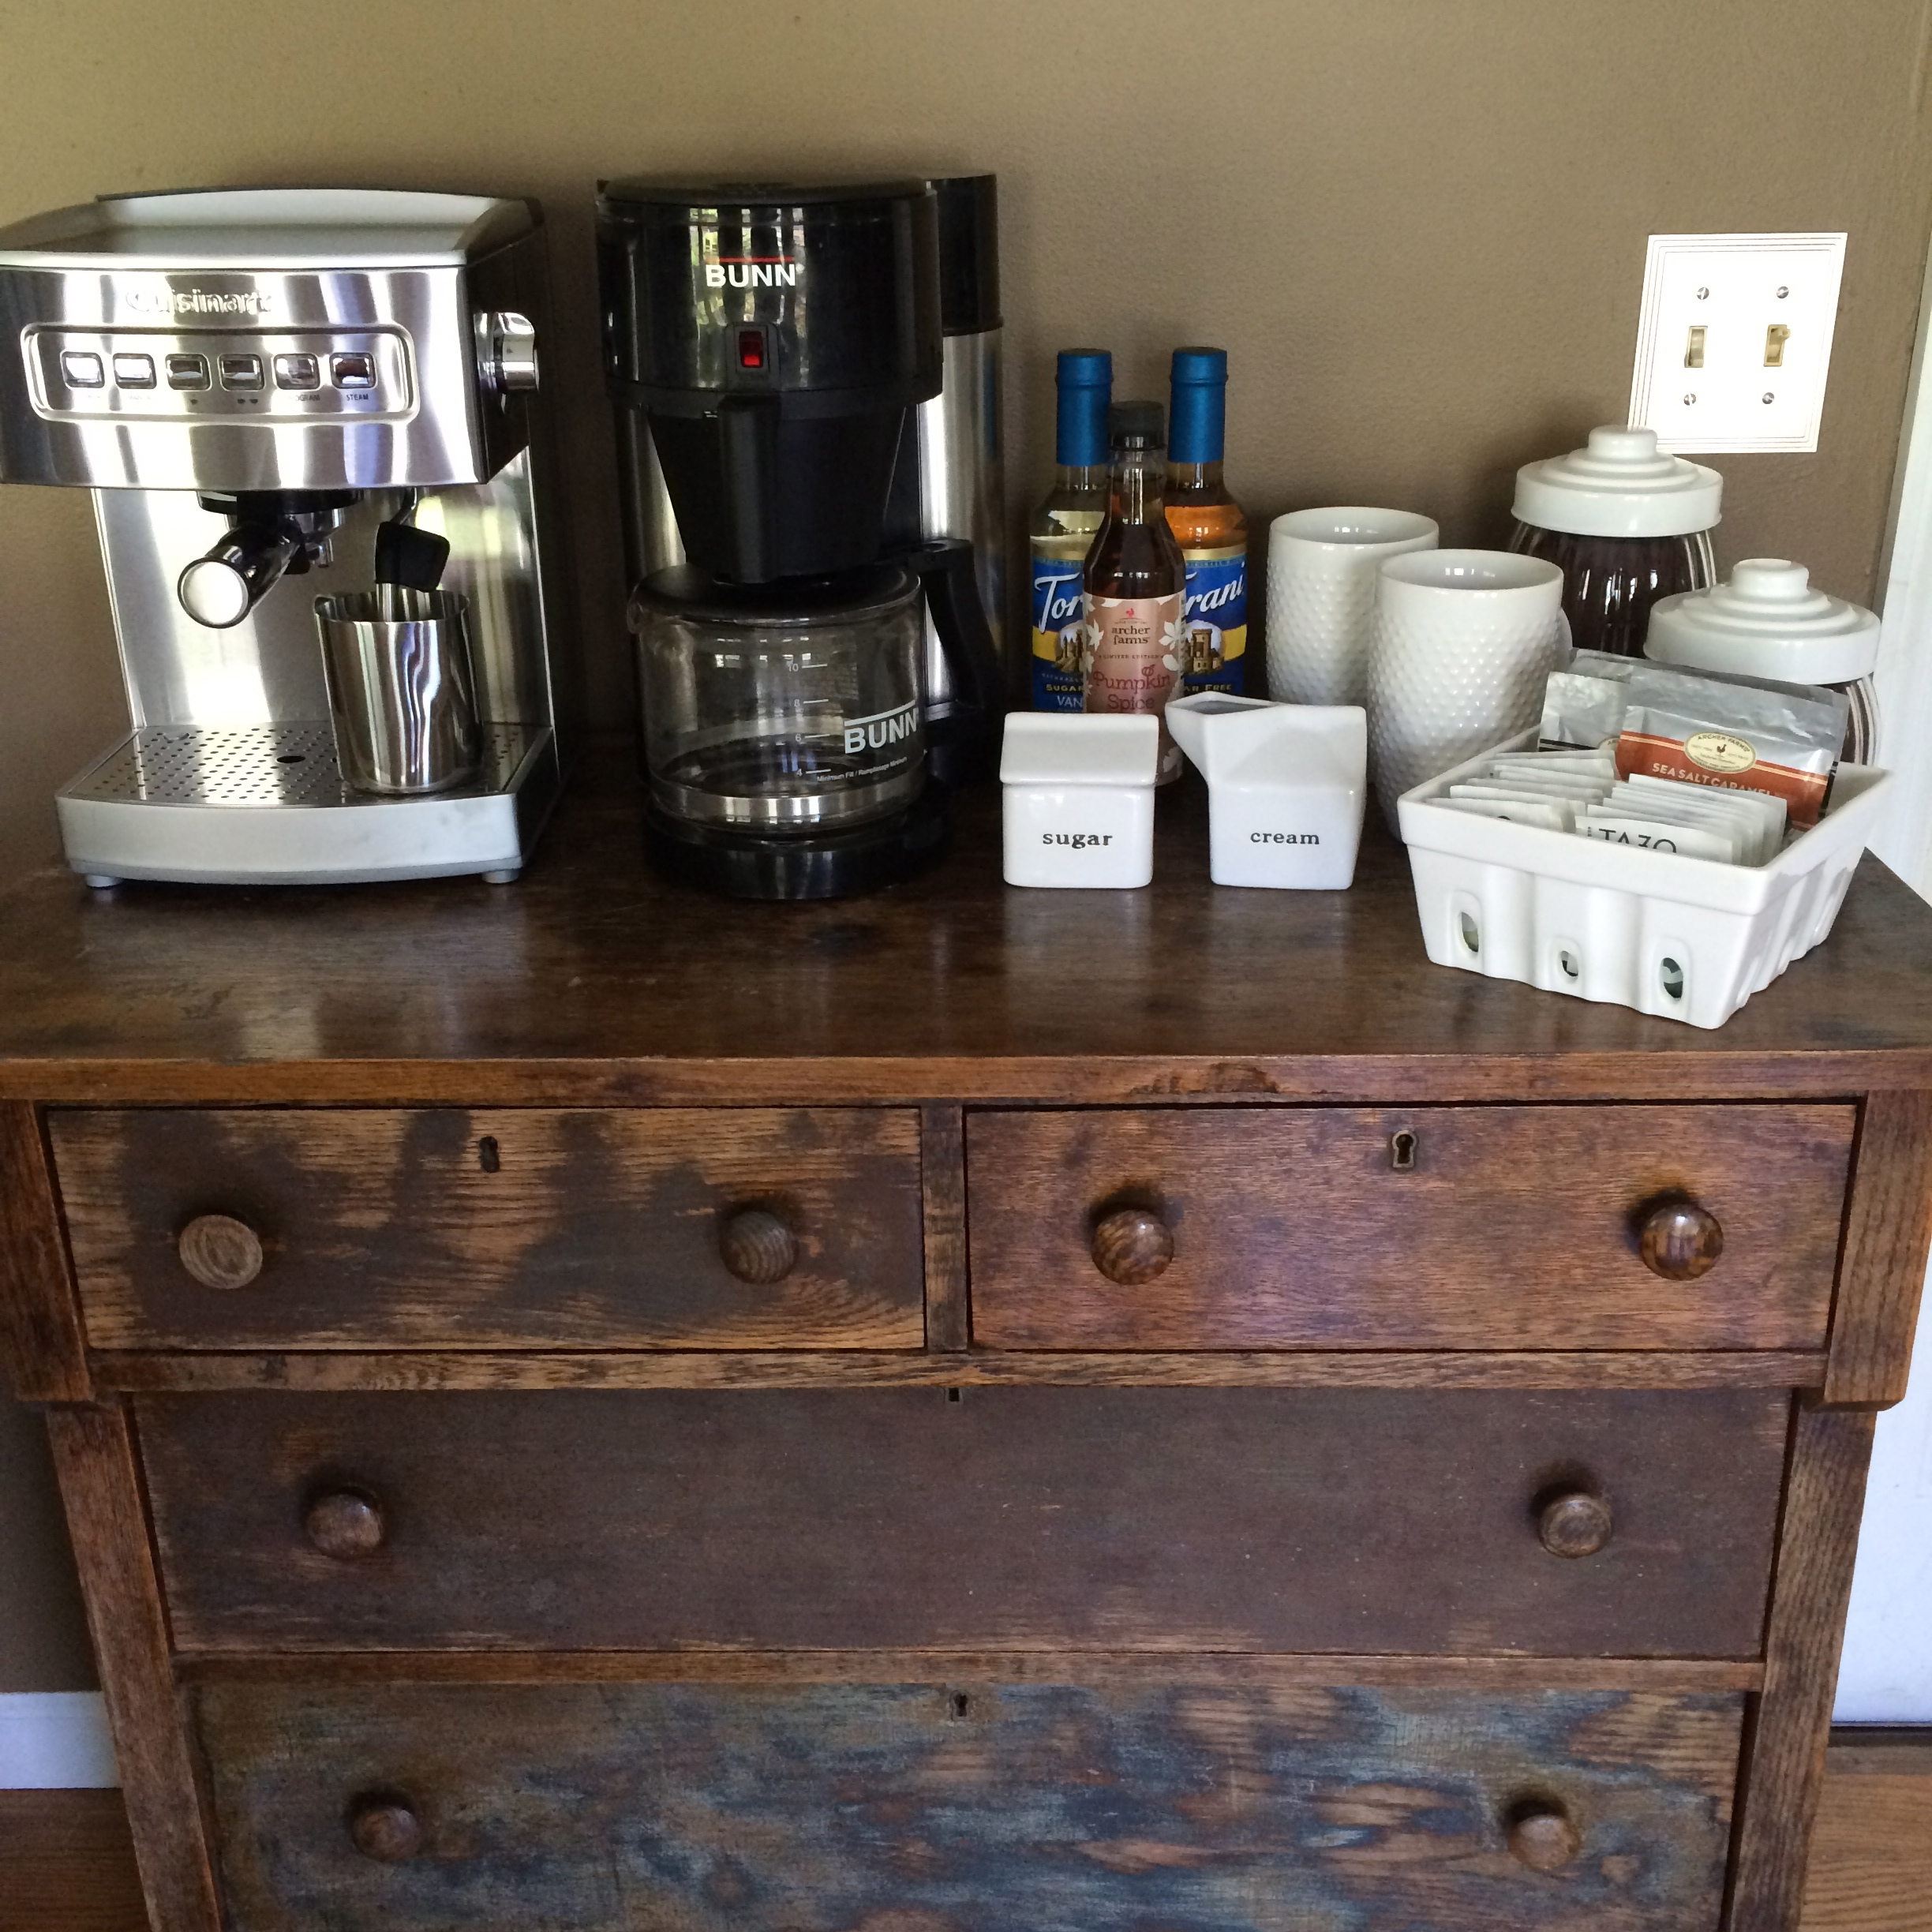 Home Coffee Bar Design Ideas: DIY Coffee Bar At Home